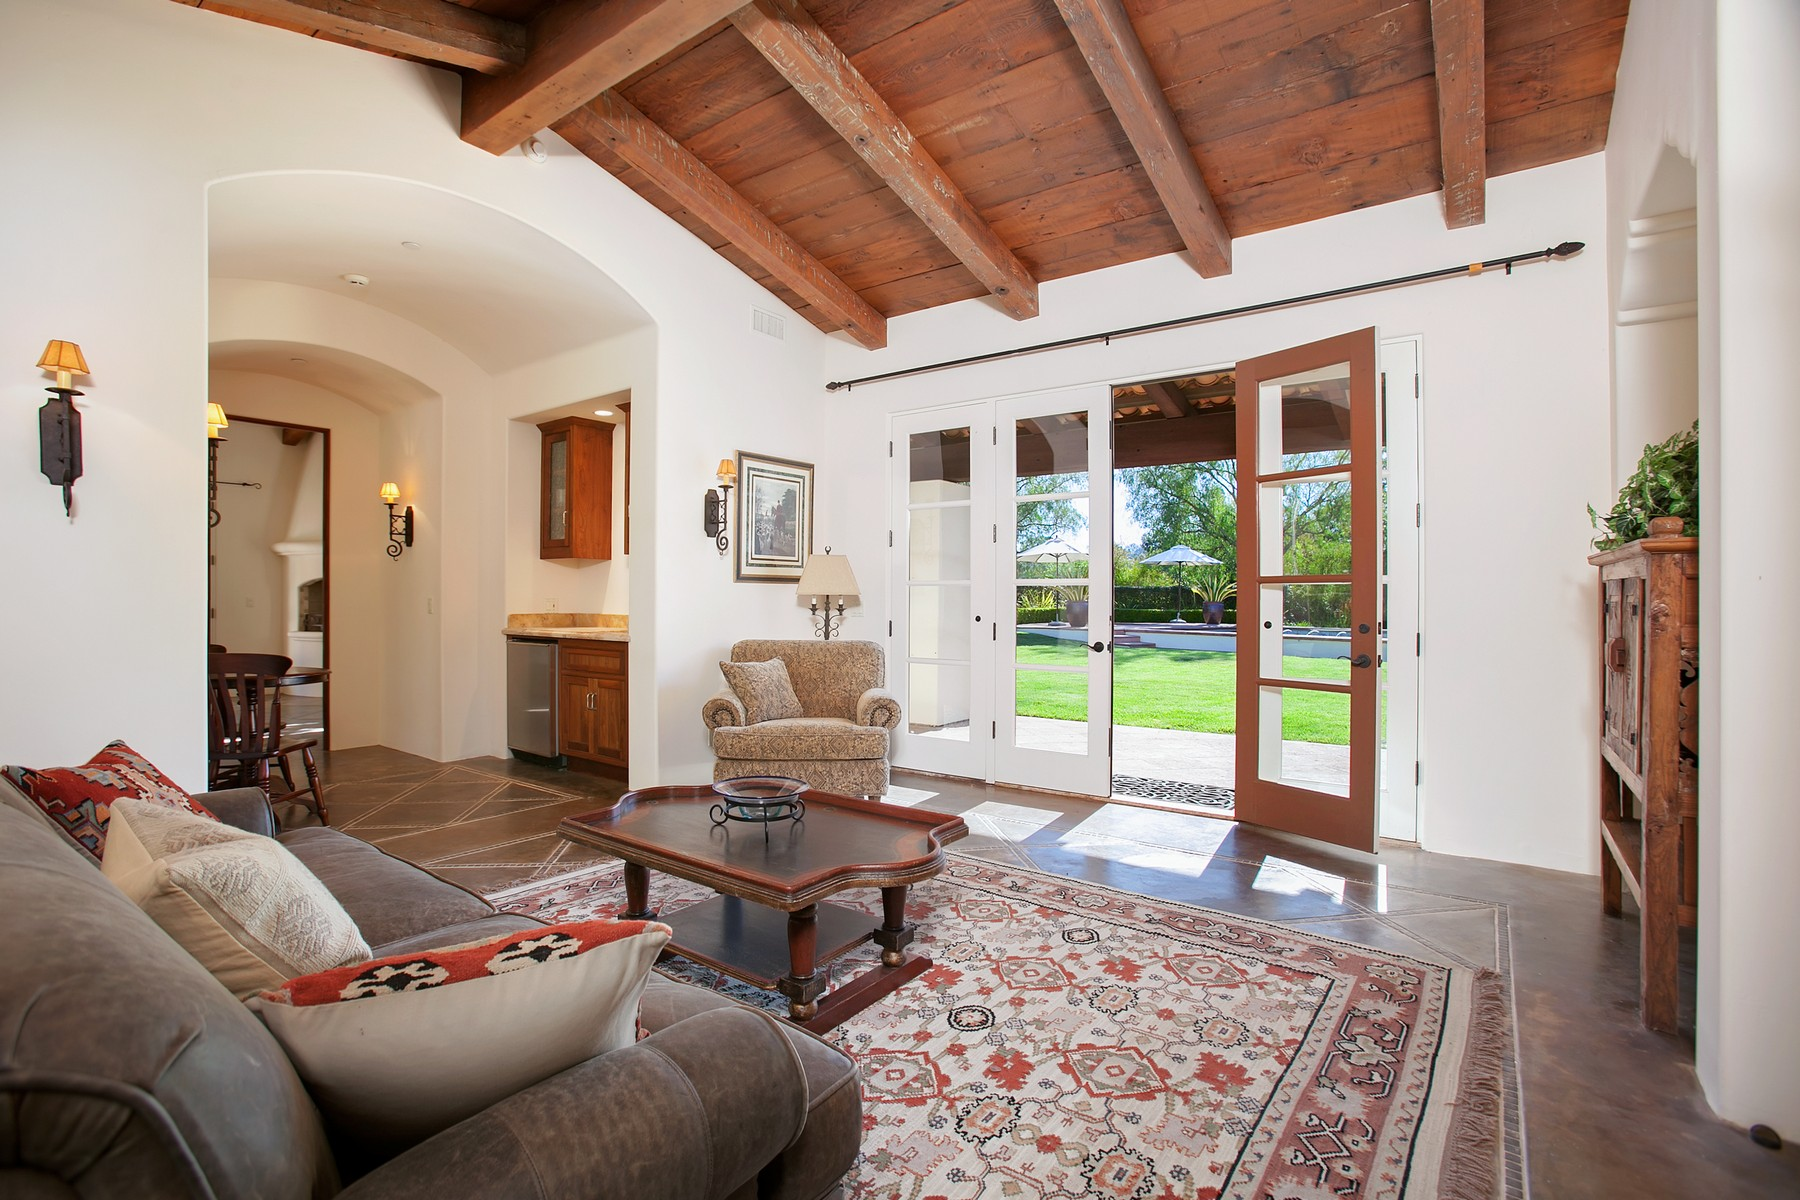 Additional photo for property listing at 17222 Avenida De Acacias  Rancho Santa Fe, California 92067 United States